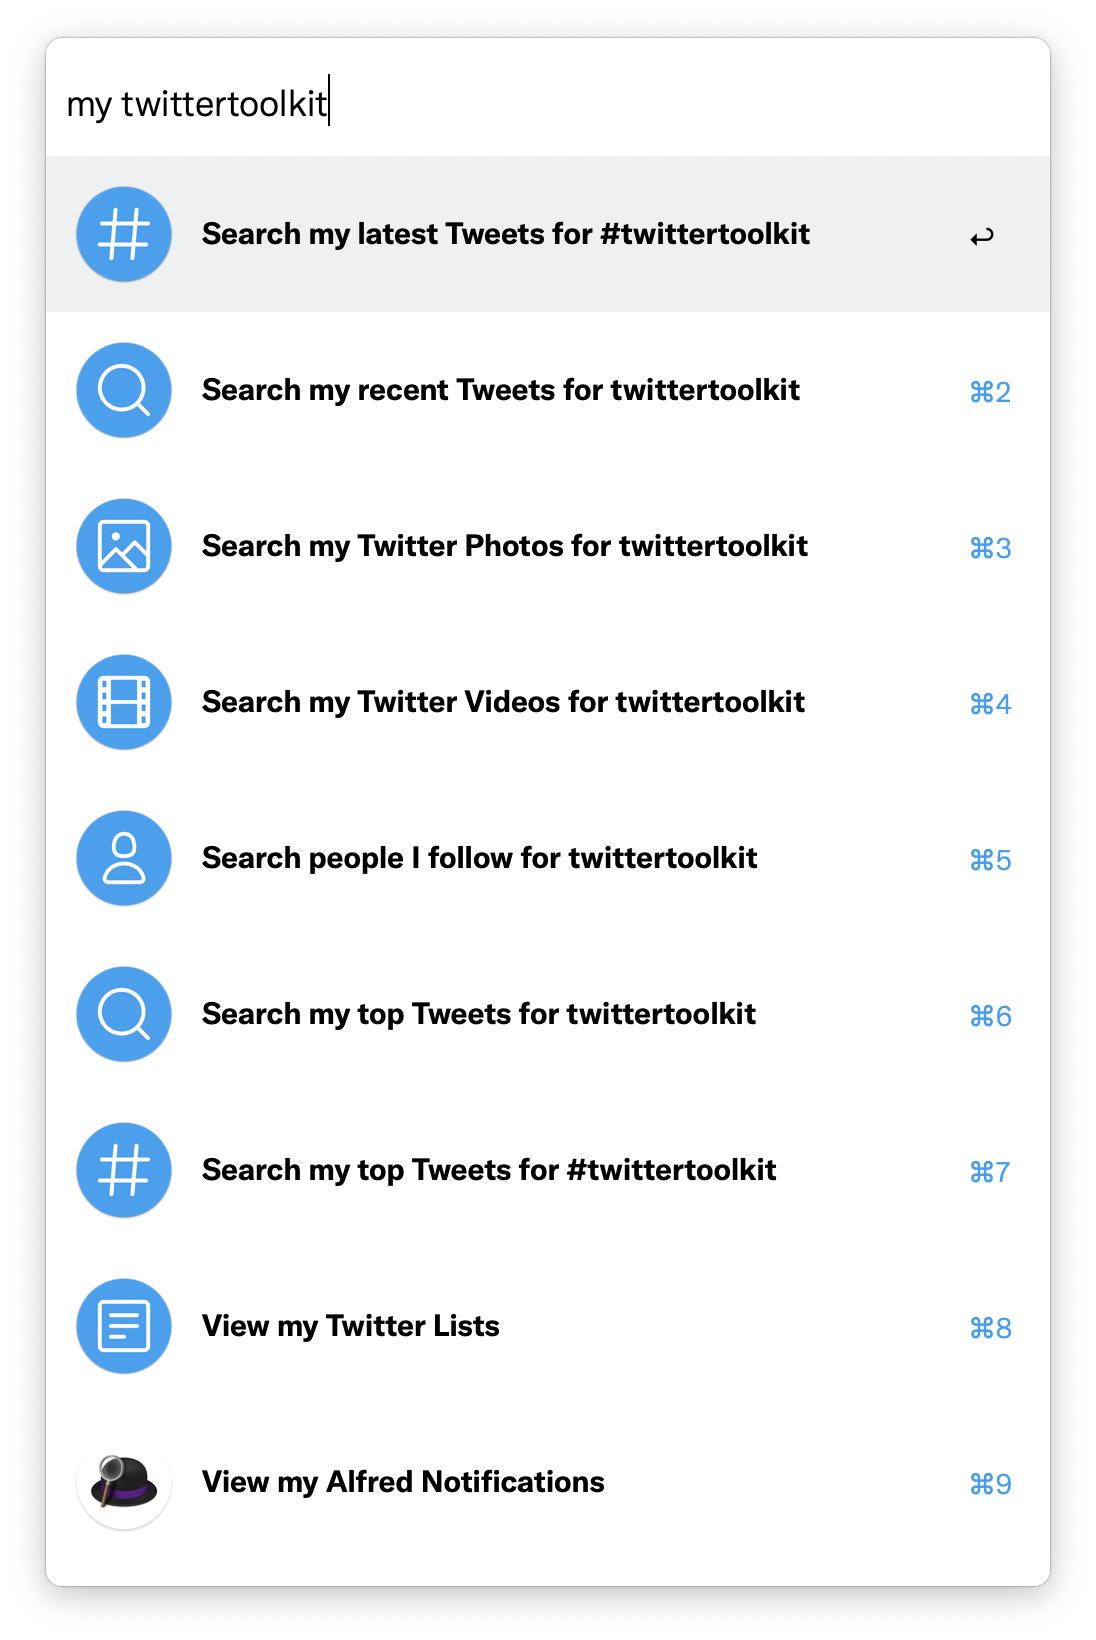 Twitter Toolkit's support for searching for my tweets